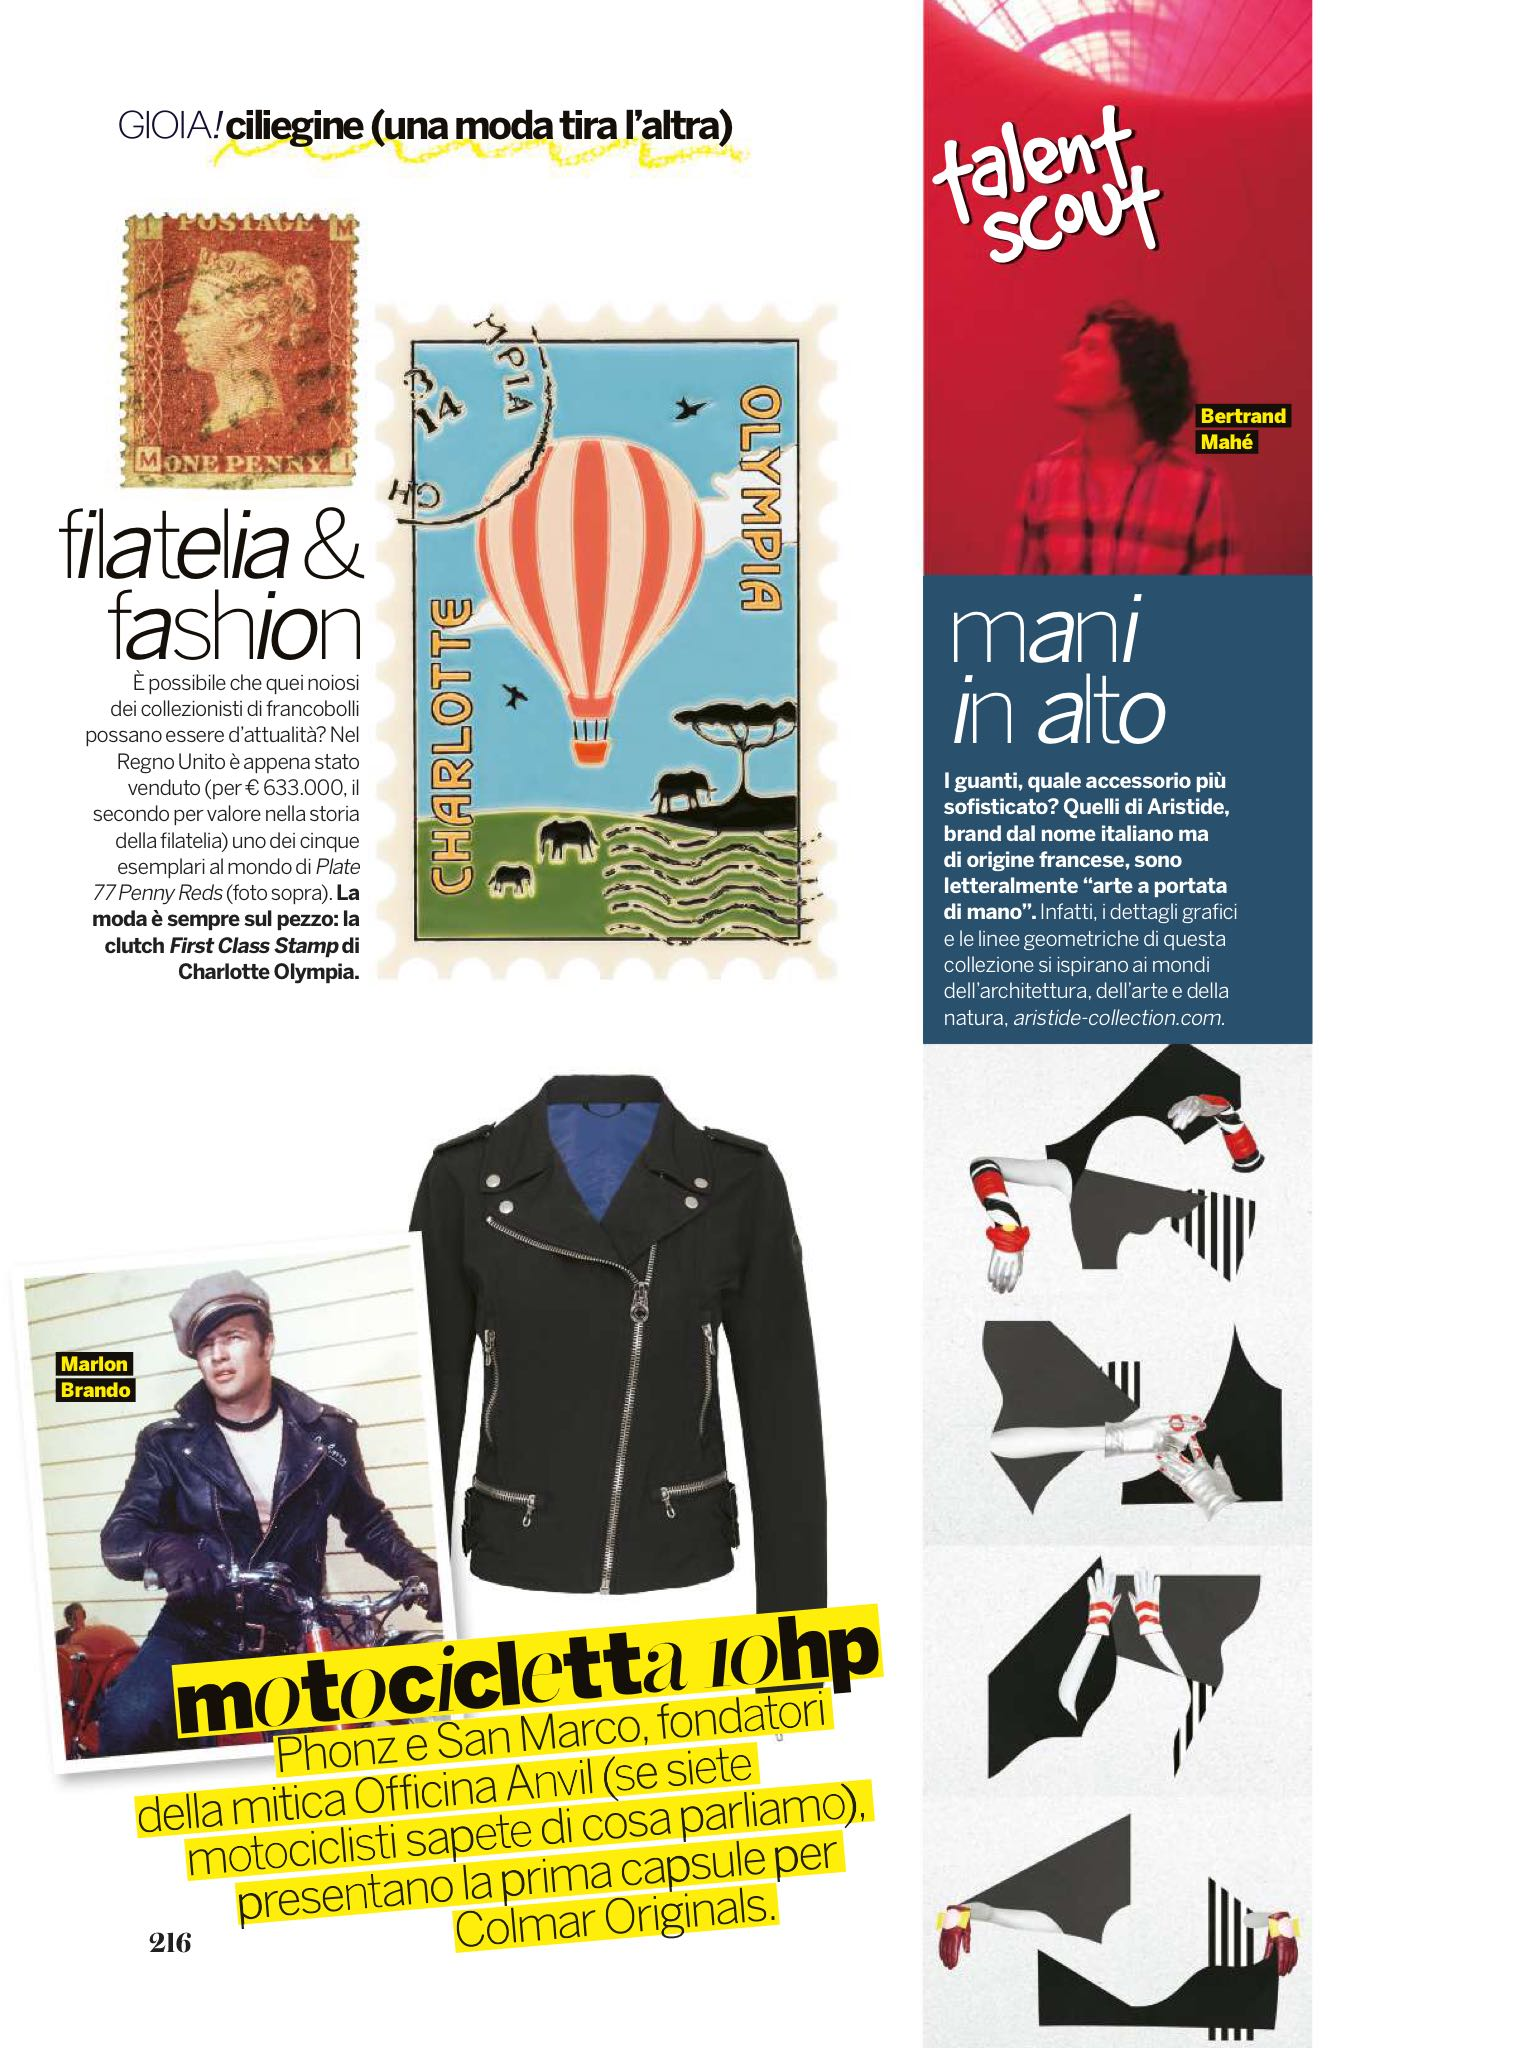 Aristide Gloves on GIOIA! Magazine